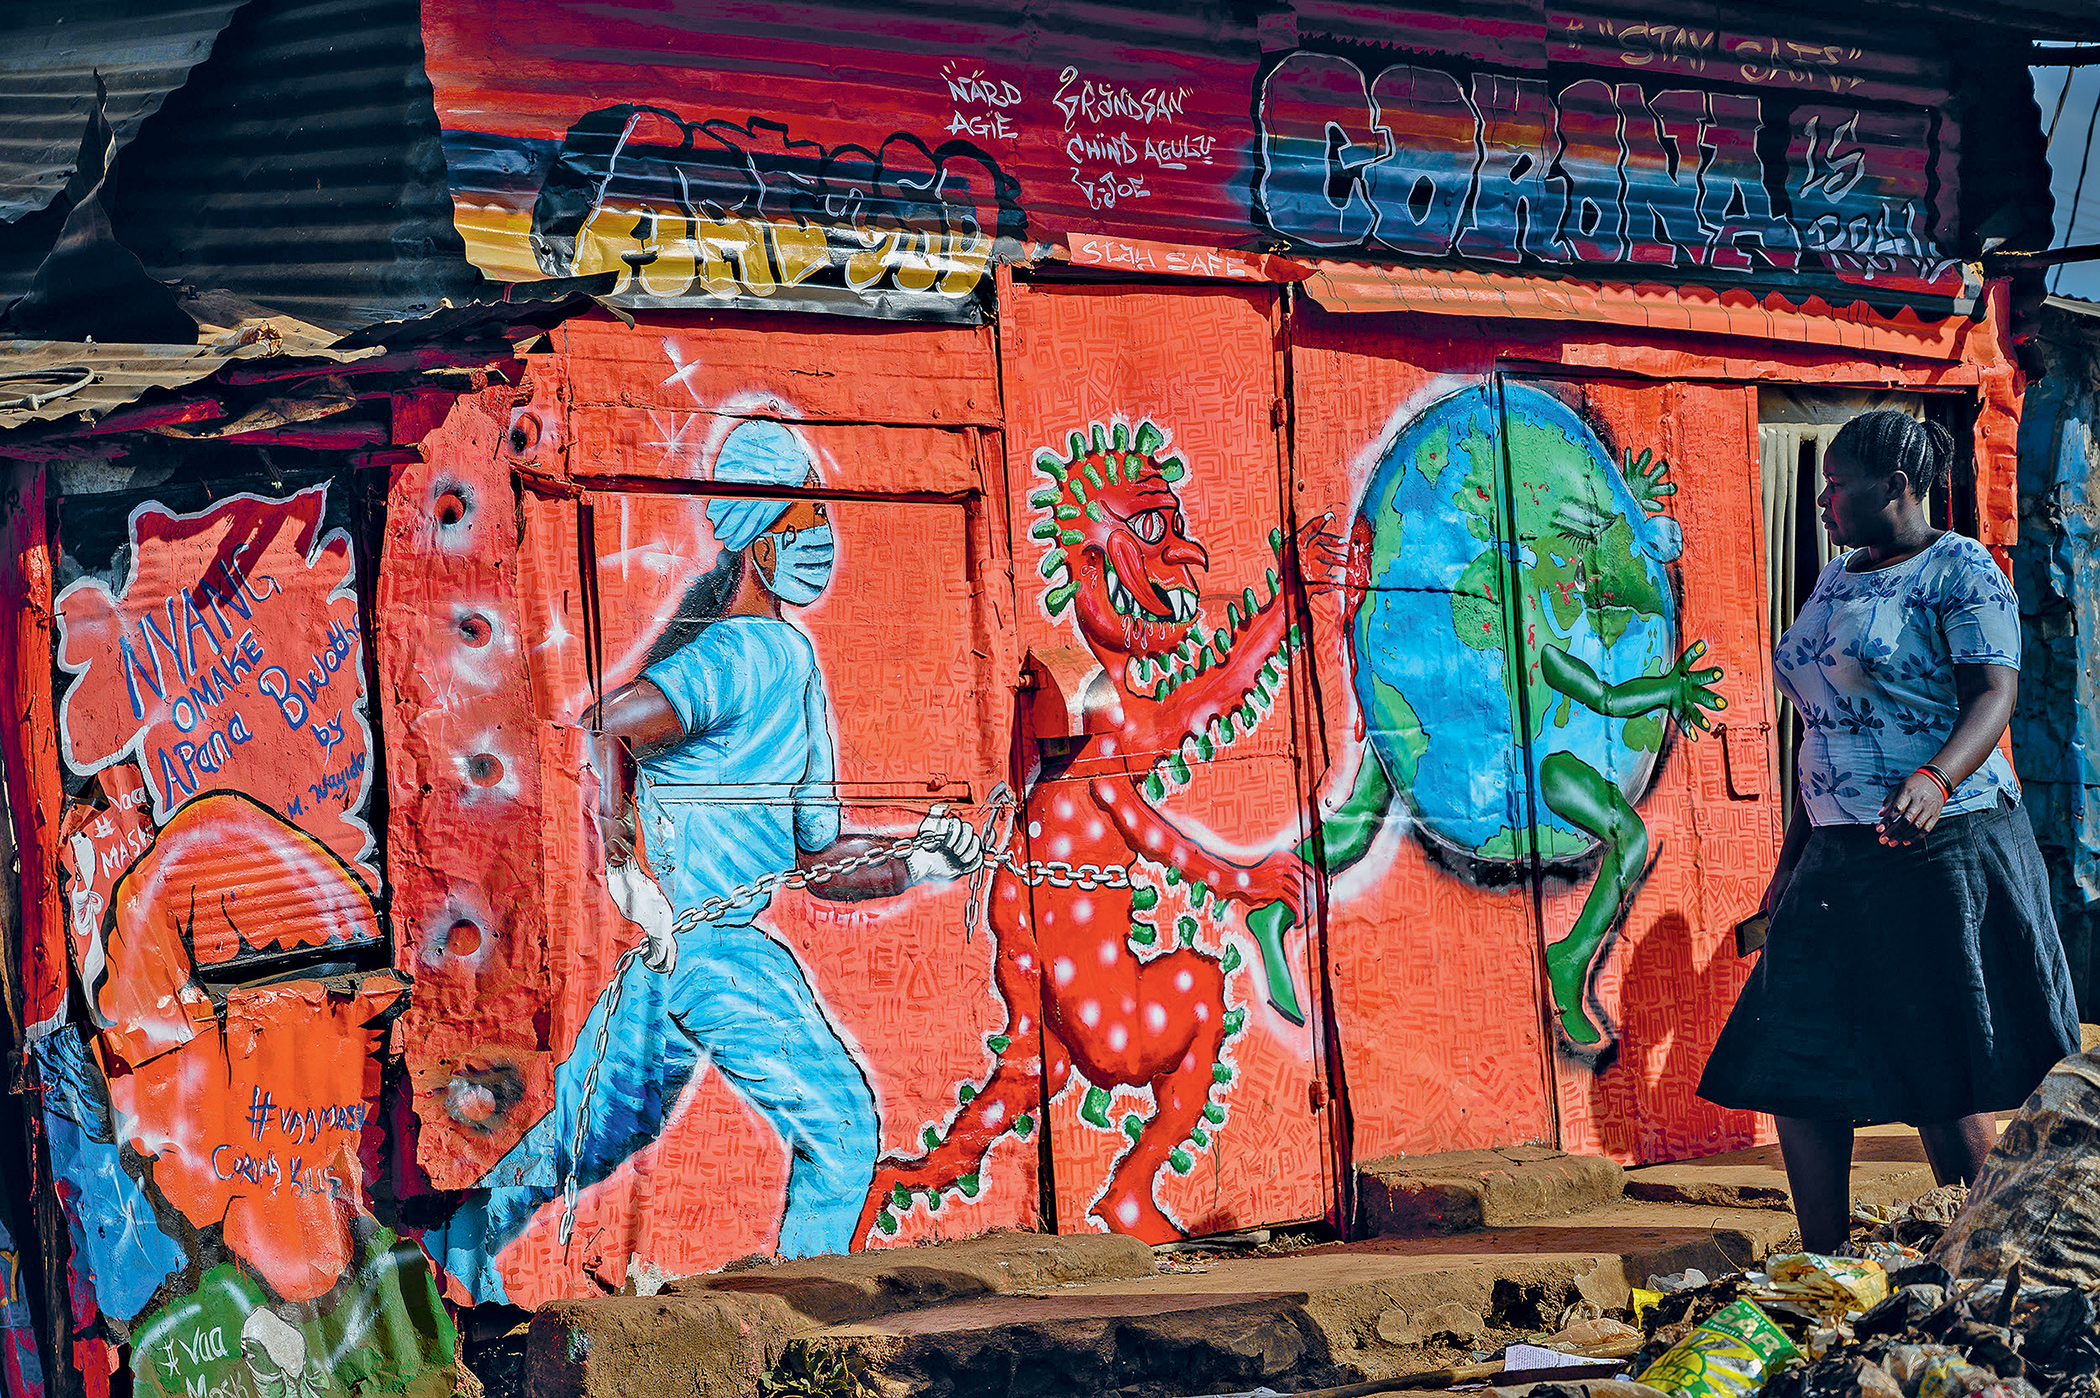 A local art group, art360, painted this mural dedicated to the fight against the virus in the settlement of Kibera, Nairobi, Kenya.